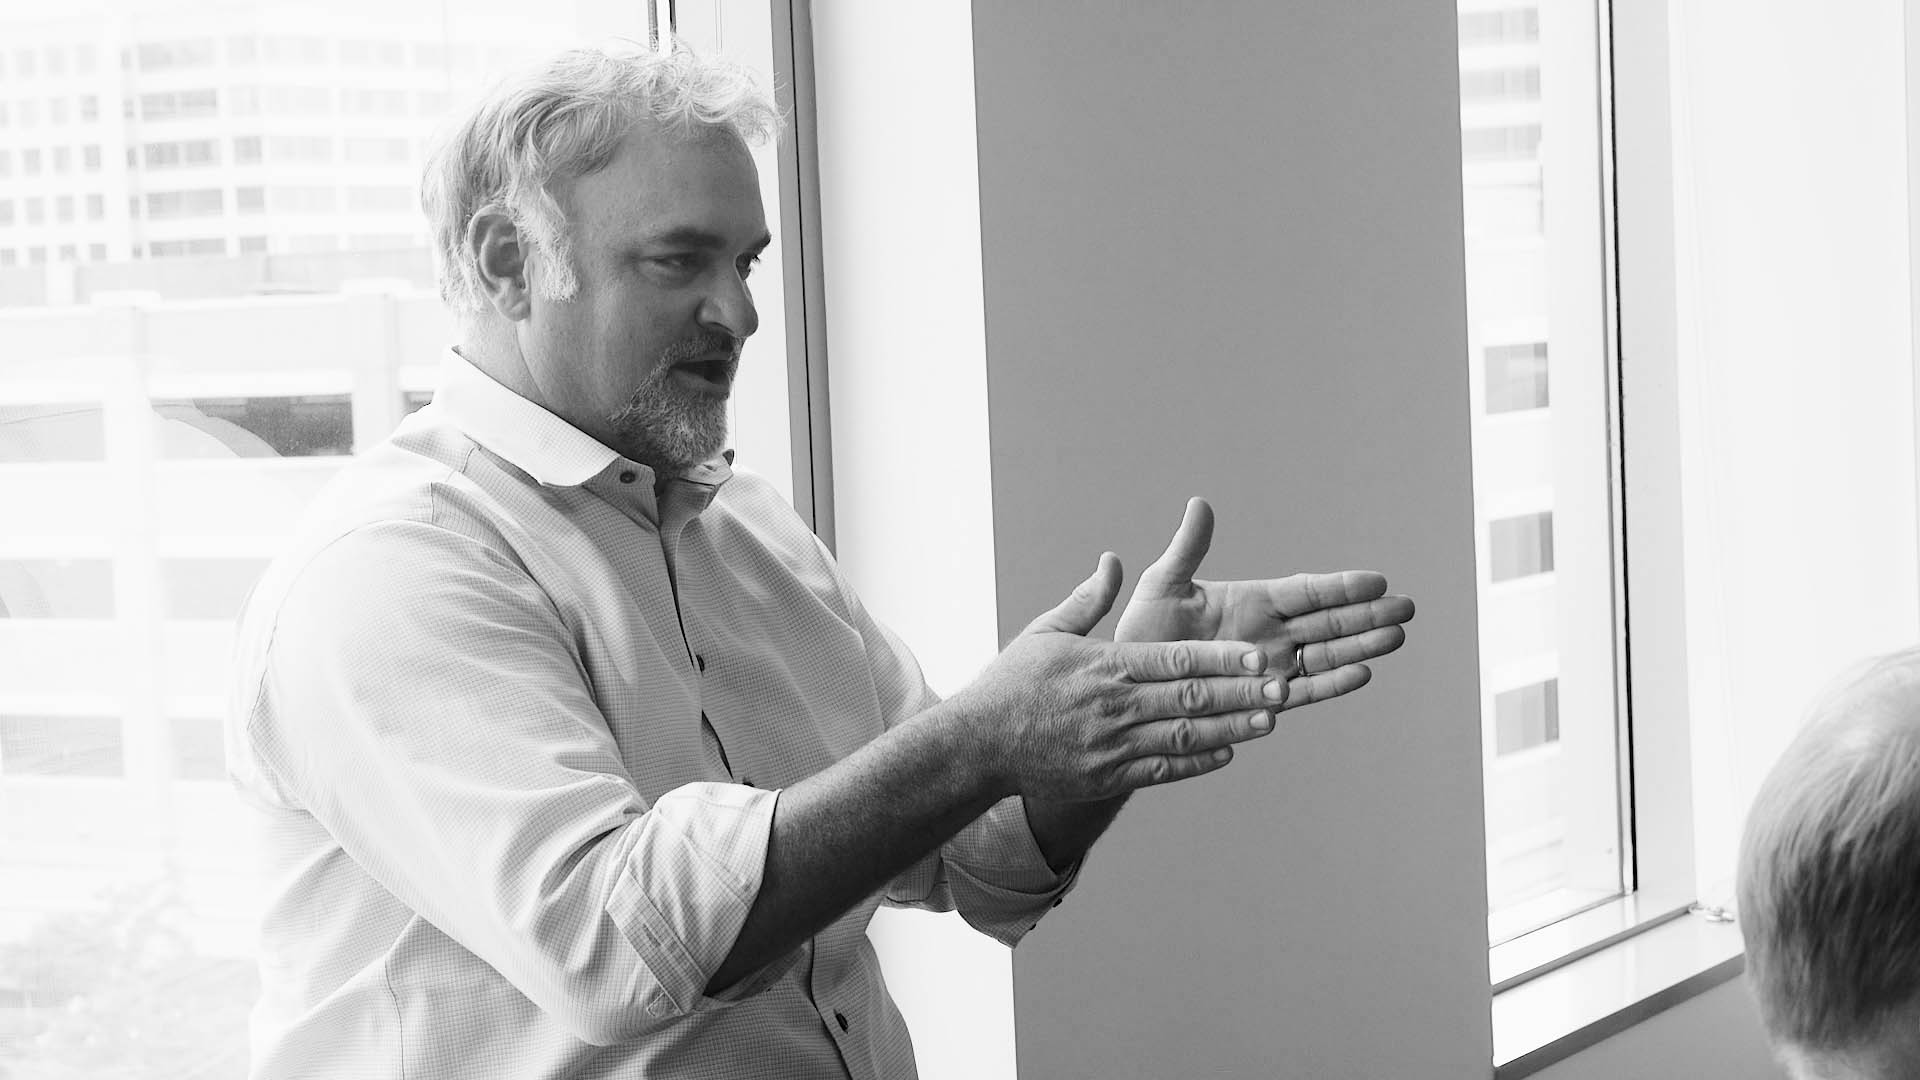 man gesturing with hands at a meeting discussing financialforce erp solutions